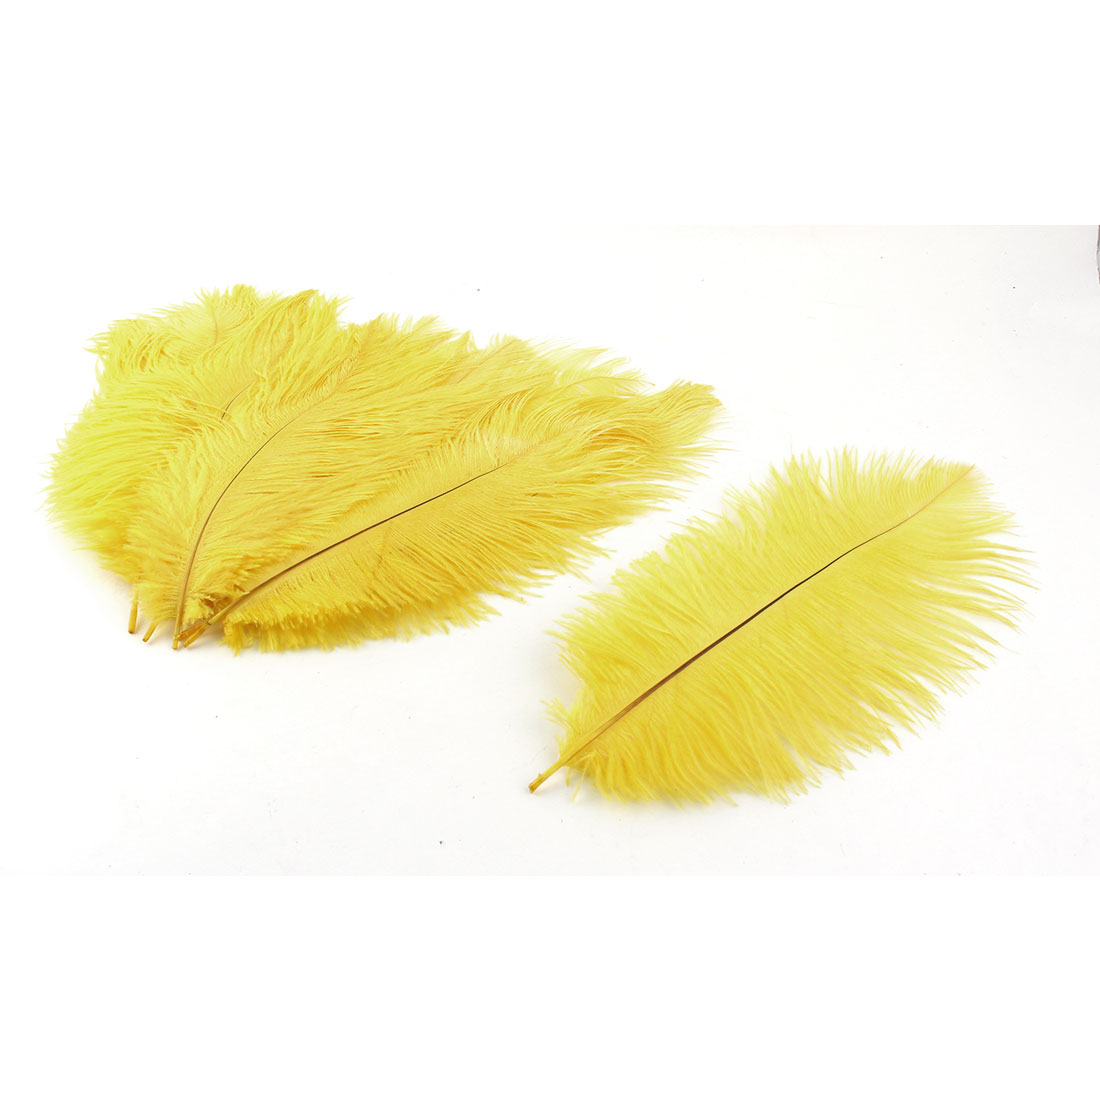 Wedding Party Clothes DIY Decor Ostrich Feathers Plume Yellow 20-25cm Length 10pcs